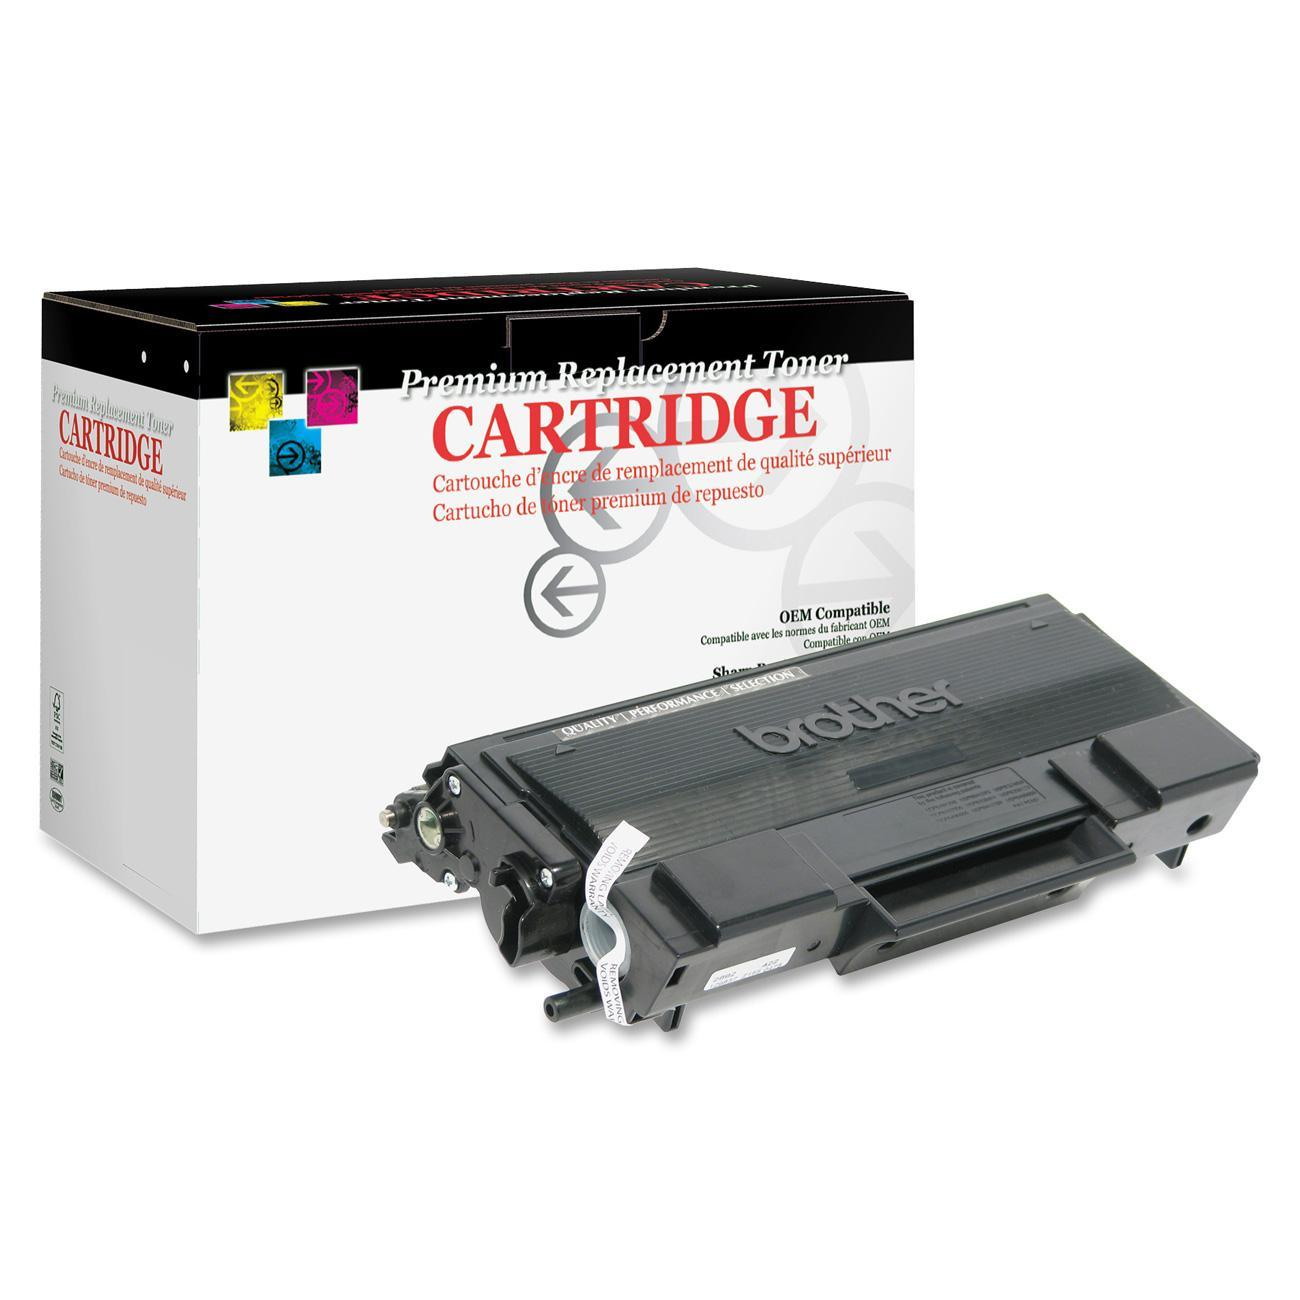 West Point, WPP200028P, West Point Remanufactured BRO TN650 Toner Cartridge, 1 Each